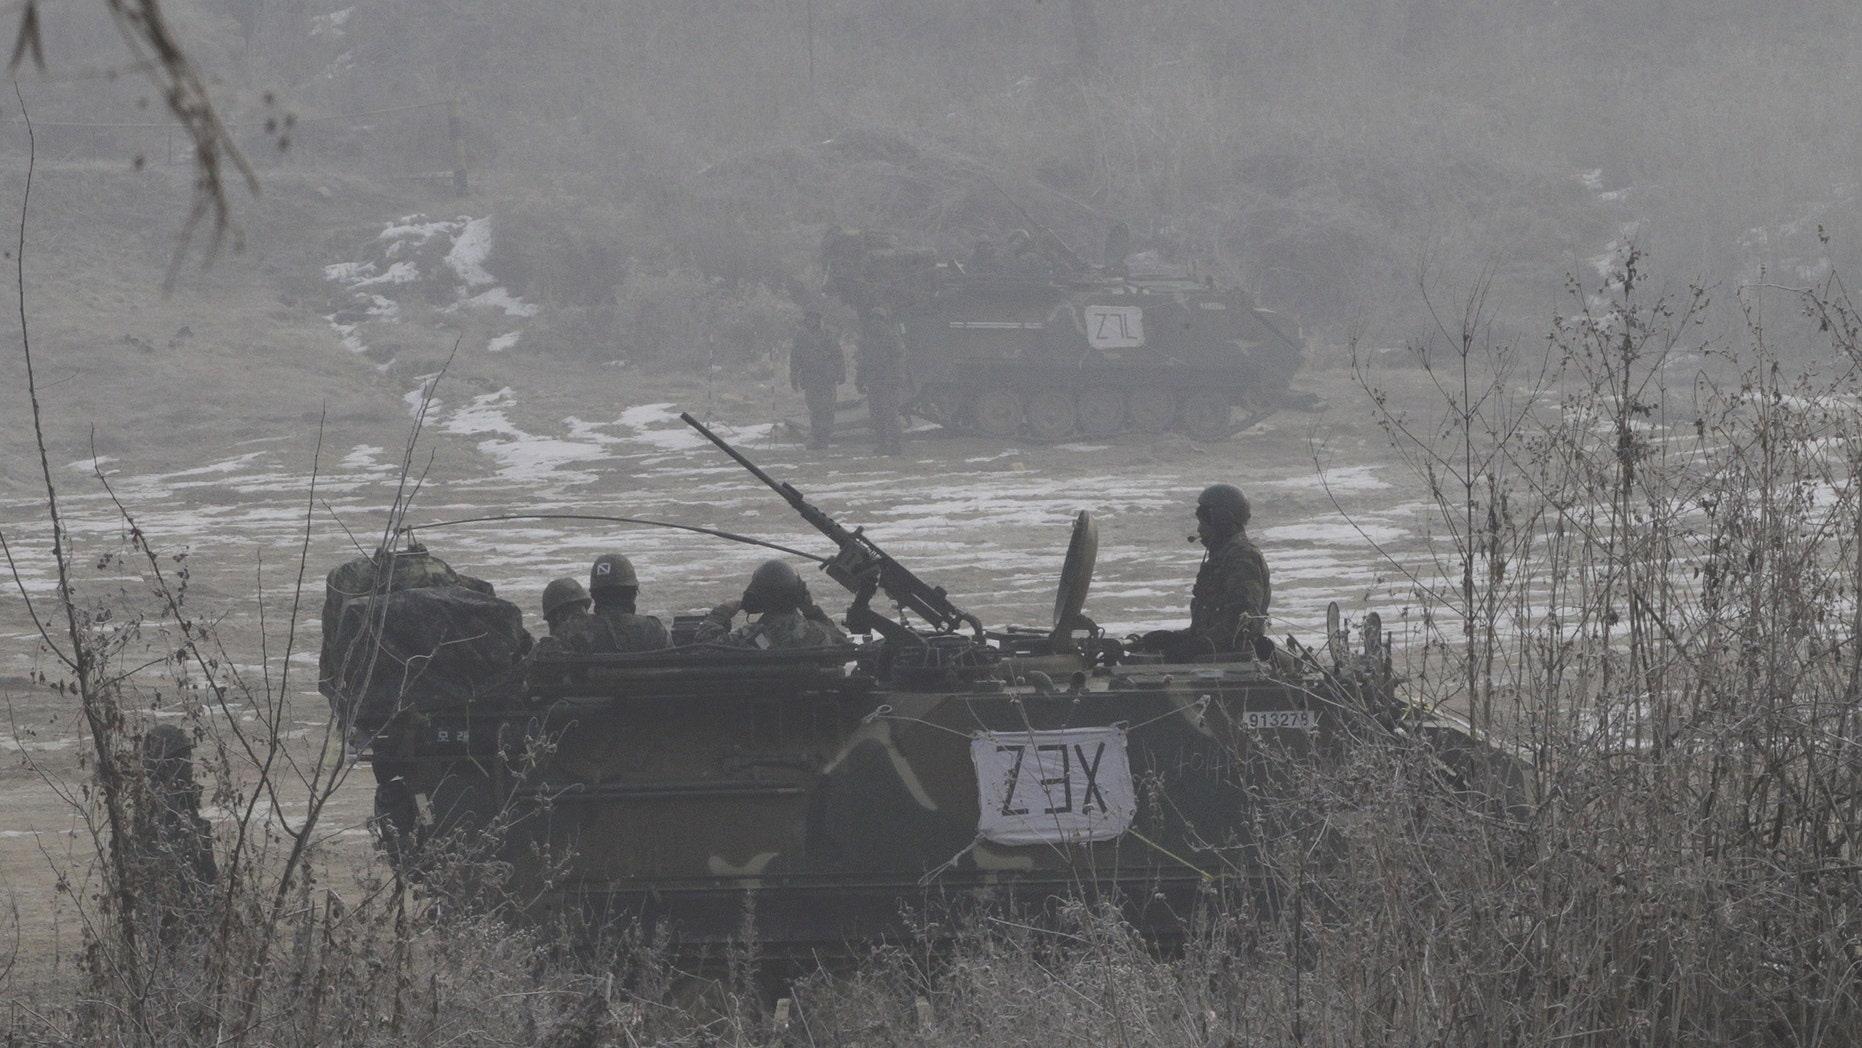 Jan. 17, 2014 - South Korean army armored vehicles during a military exercise in Paju, South Korea, near the demilitarized zone (DMZ) between the two Koreas.